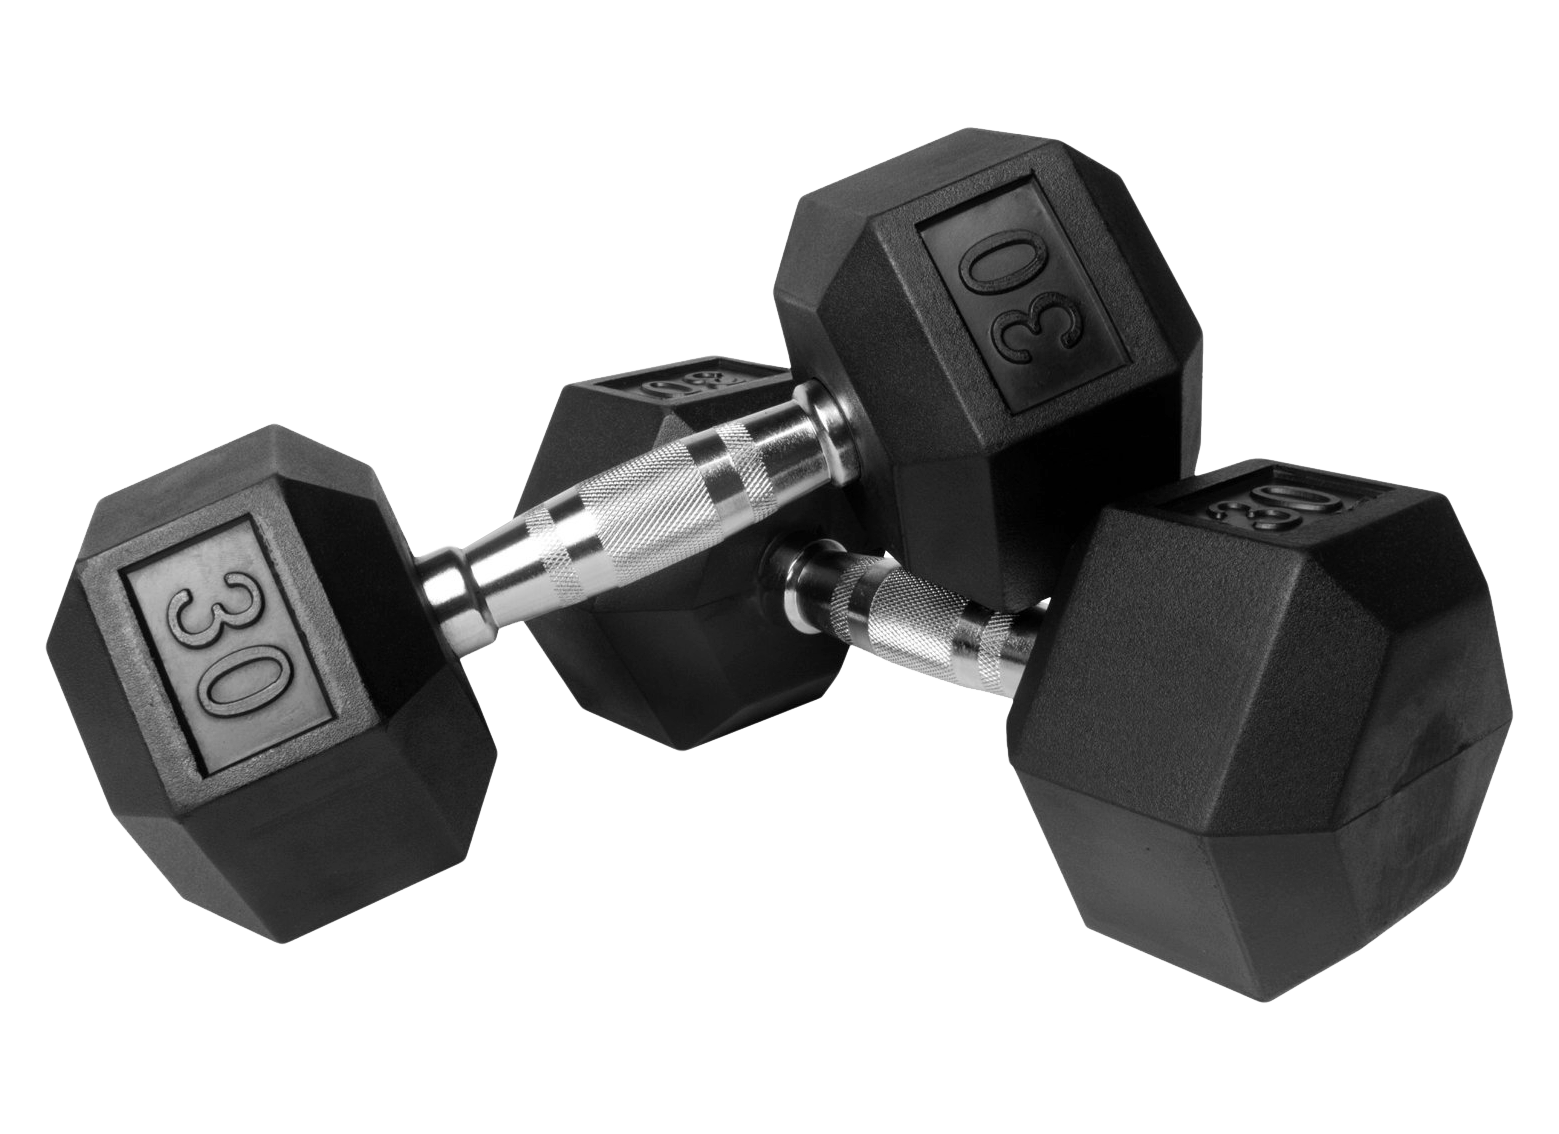 Dumb bell png. Dumbbells images free download